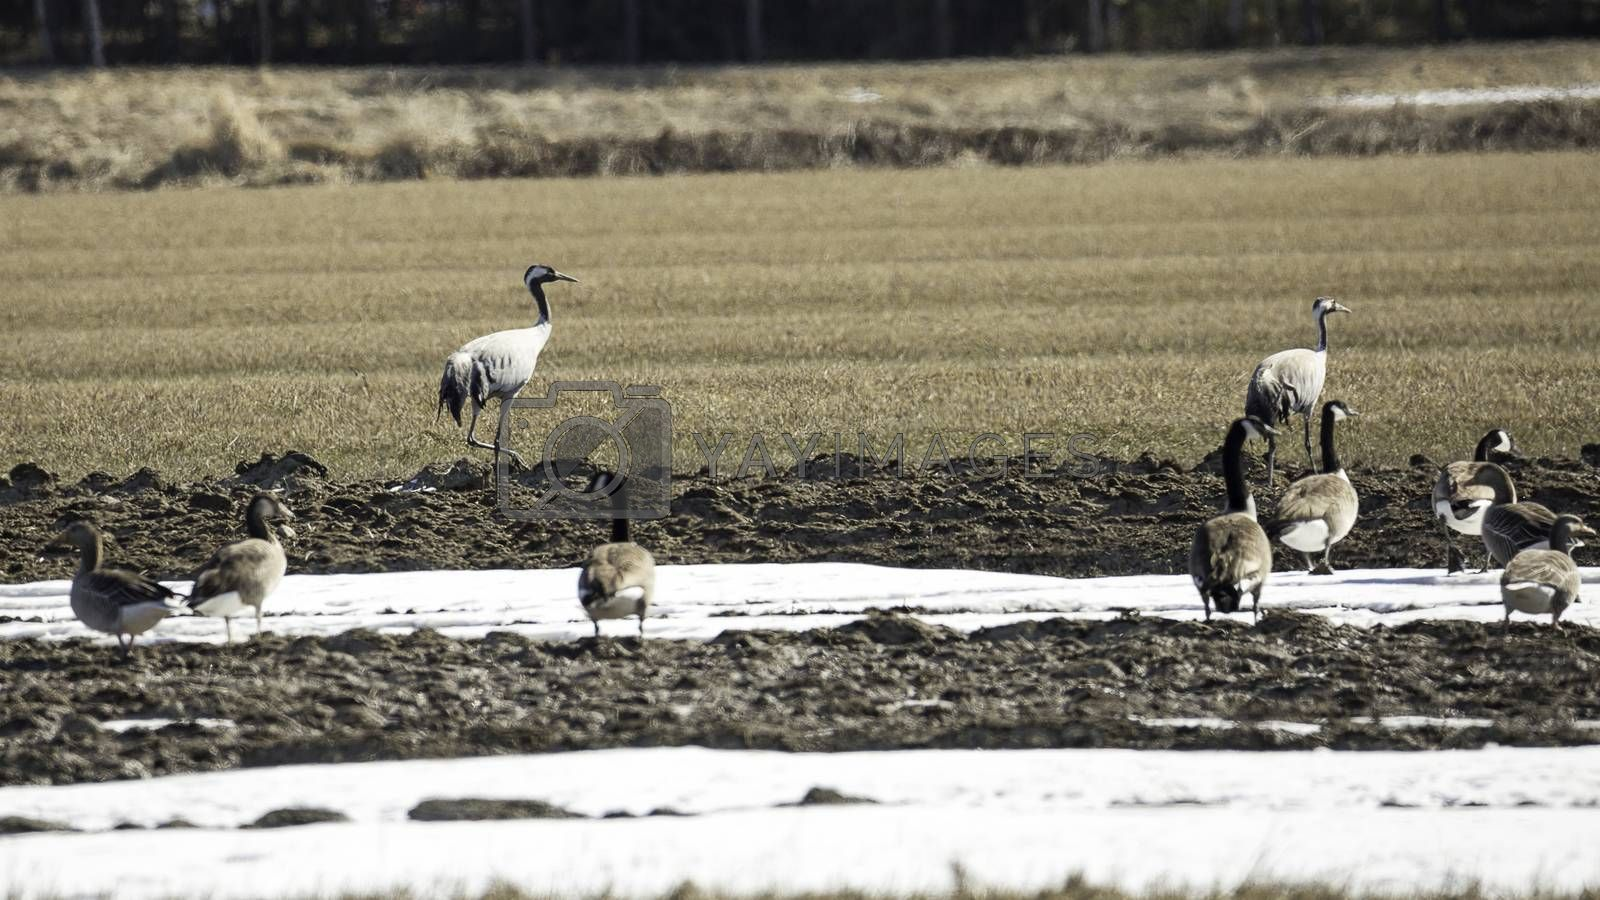 Common Cranes and Canada Geese in Field.